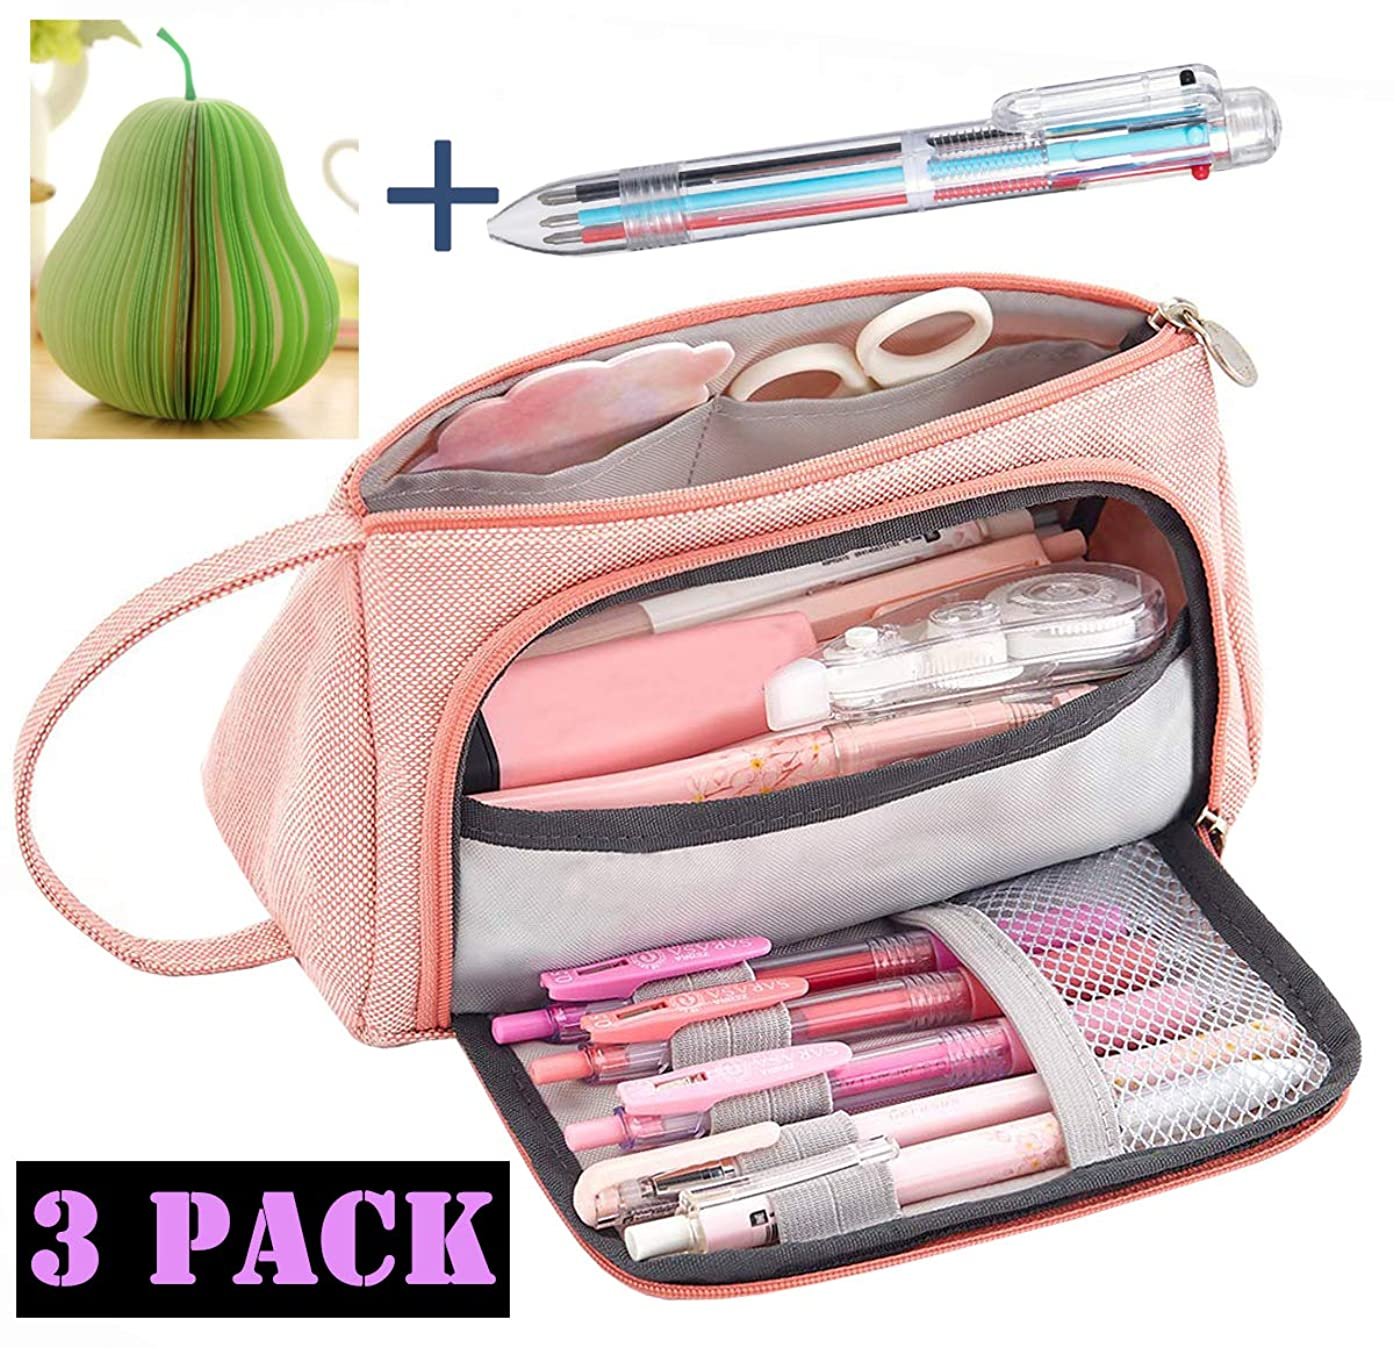 Big Capacity Pencil Pen Case Bag Pouch Holder for Middle High School Office Girl Adult Large Storage Pencil Case-Includes 1PCS Post-it Note and 1PCS Multicolor Ballpoint Pens(Pink)